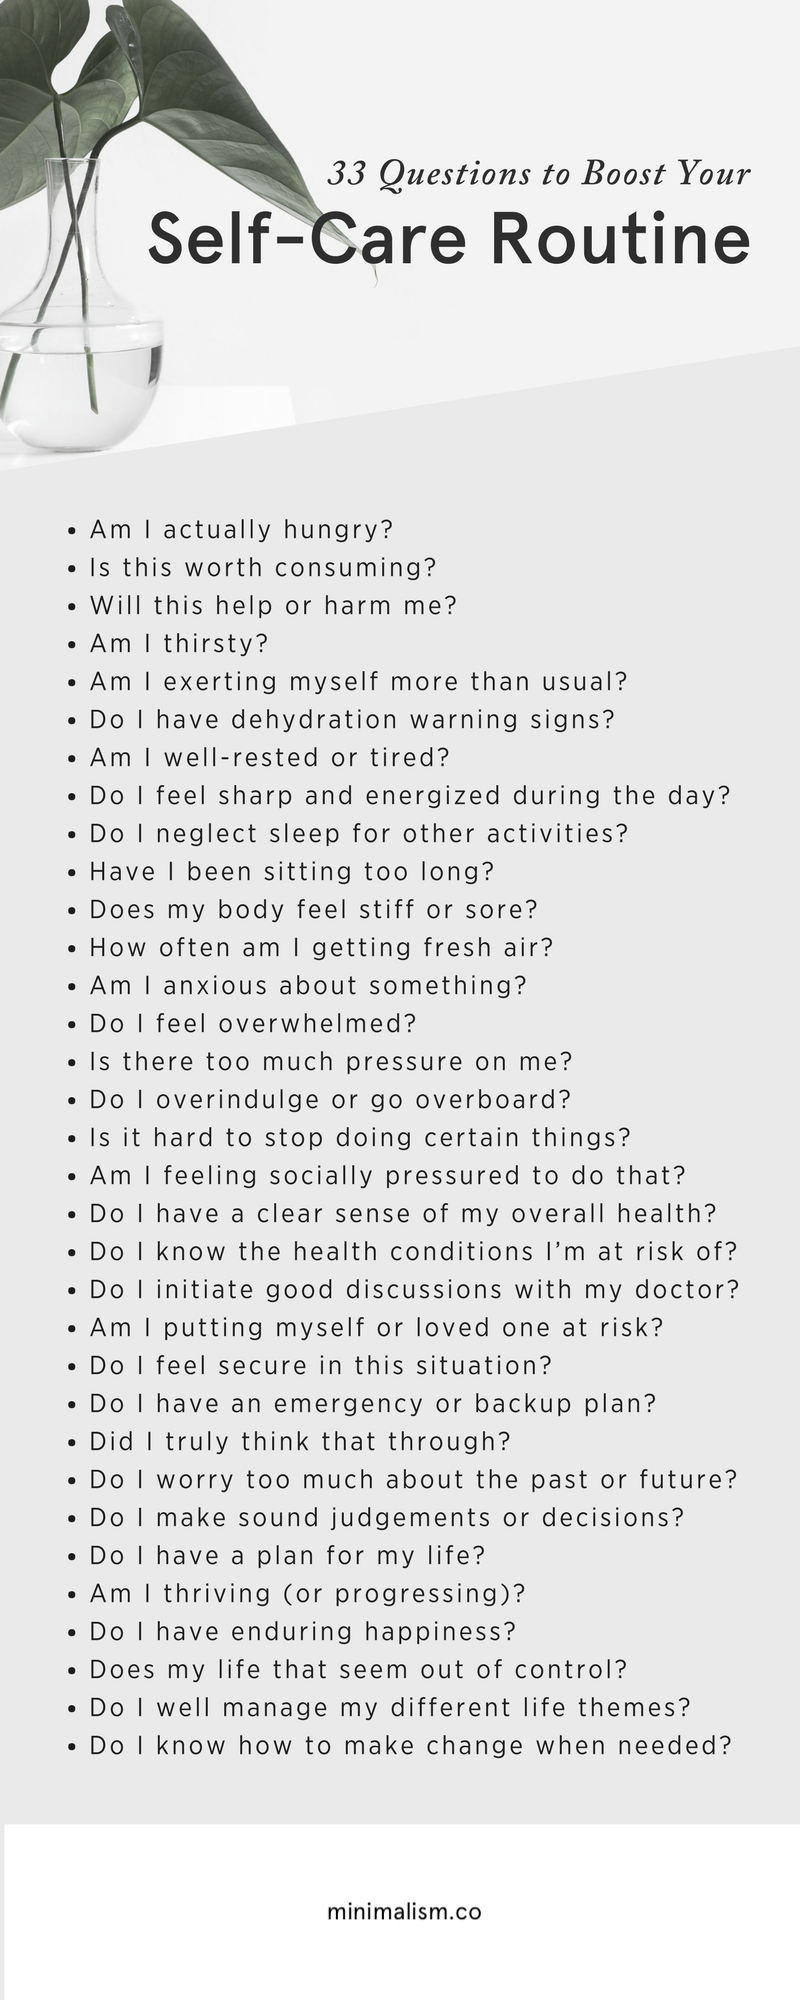 33 Self-Care Questions